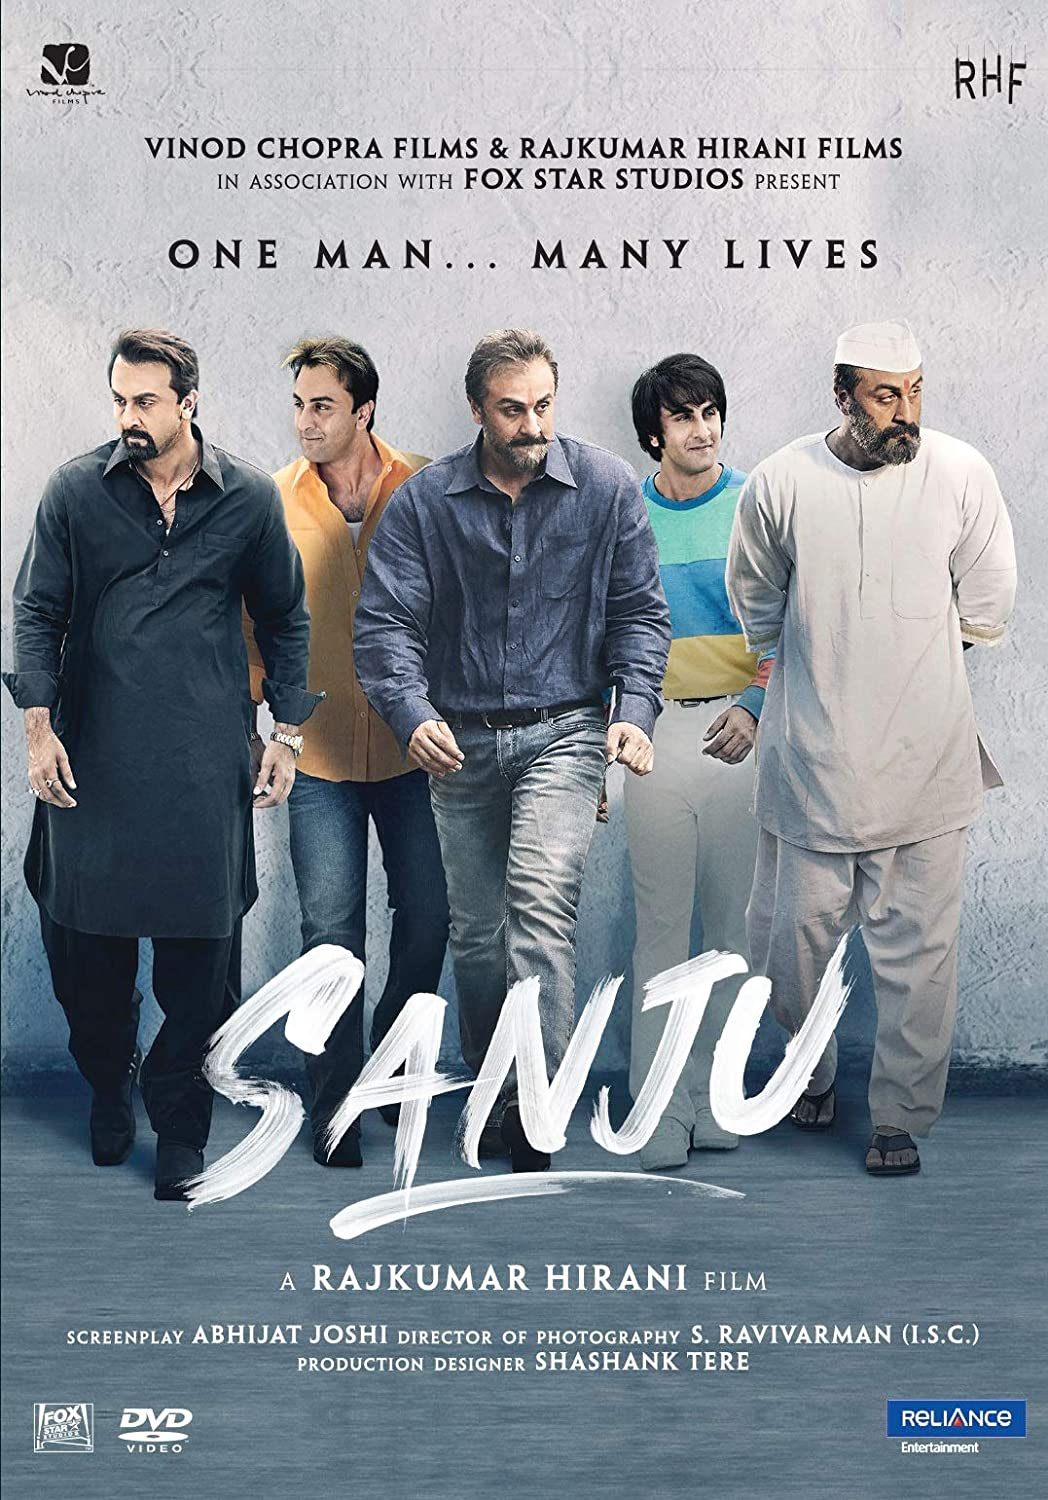 Amazon.in: Buy Sanju DVD, Blu-ray Online at Best Prices in India ...